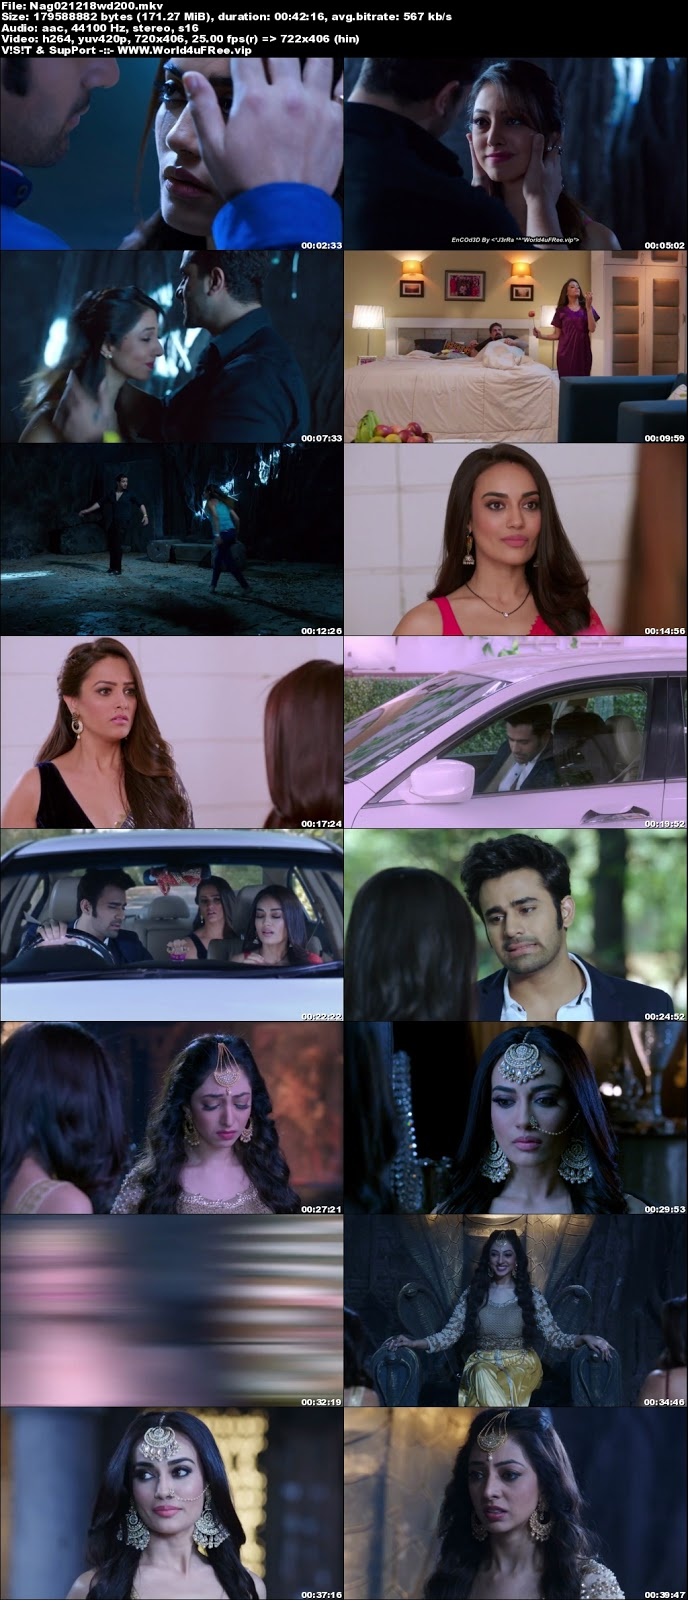 Naagin Season 3 2018 Episode 54 WEBRip 480p 200Mb x264world4ufree.vip tv show Naagin Season 3 hindi tv show Naagin Season 3 Colours tv show compressed small size free download or watch online at world4ufree.vip